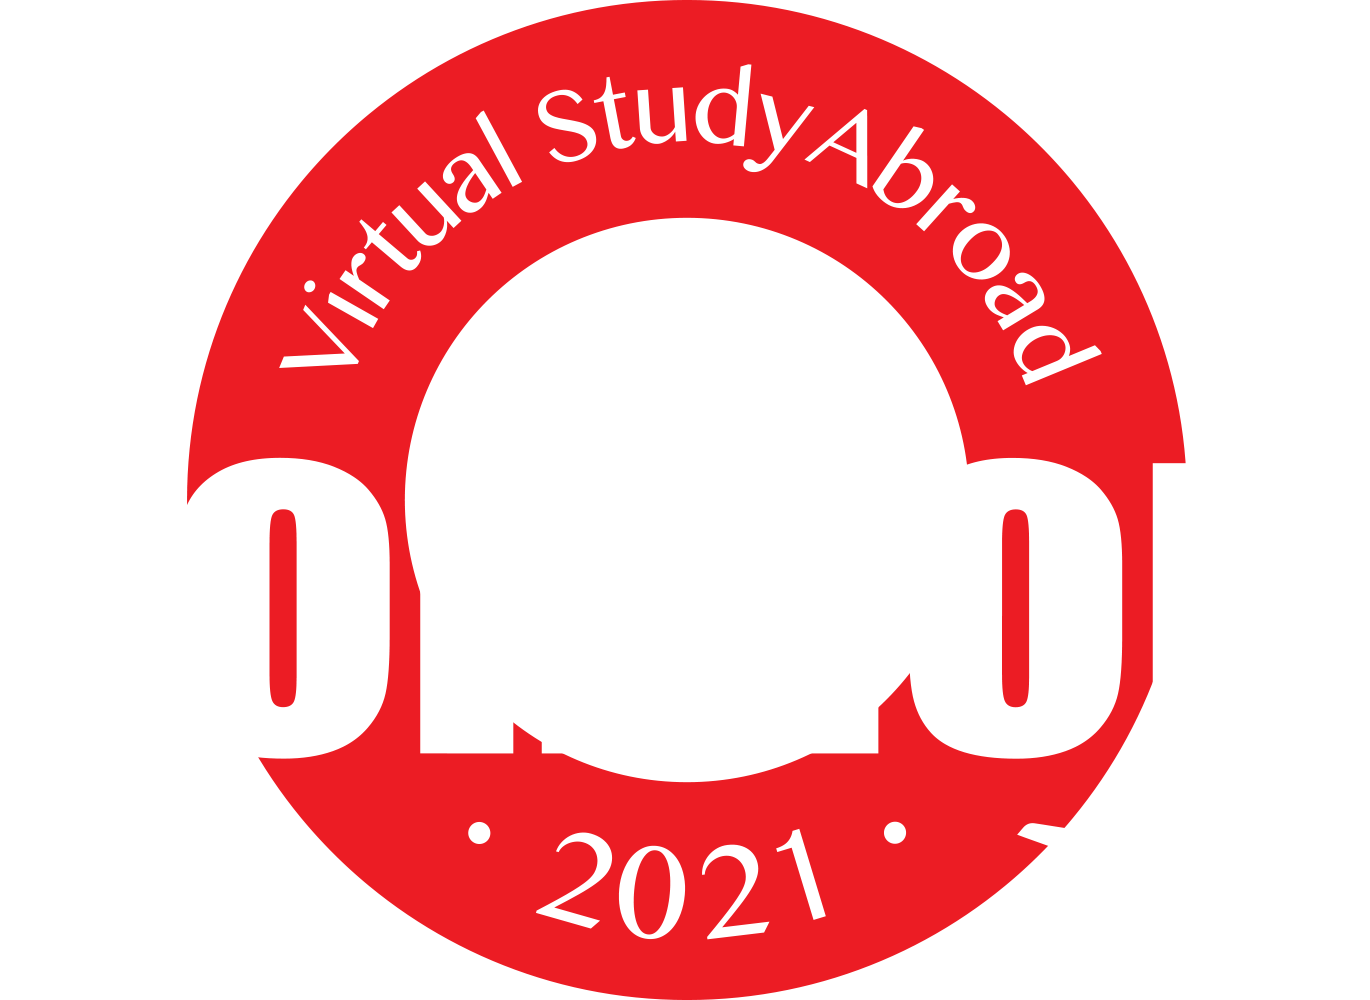 Csuf Calendar Spring 2021 Study and Intern Abroad: London   College of Humanities and Social